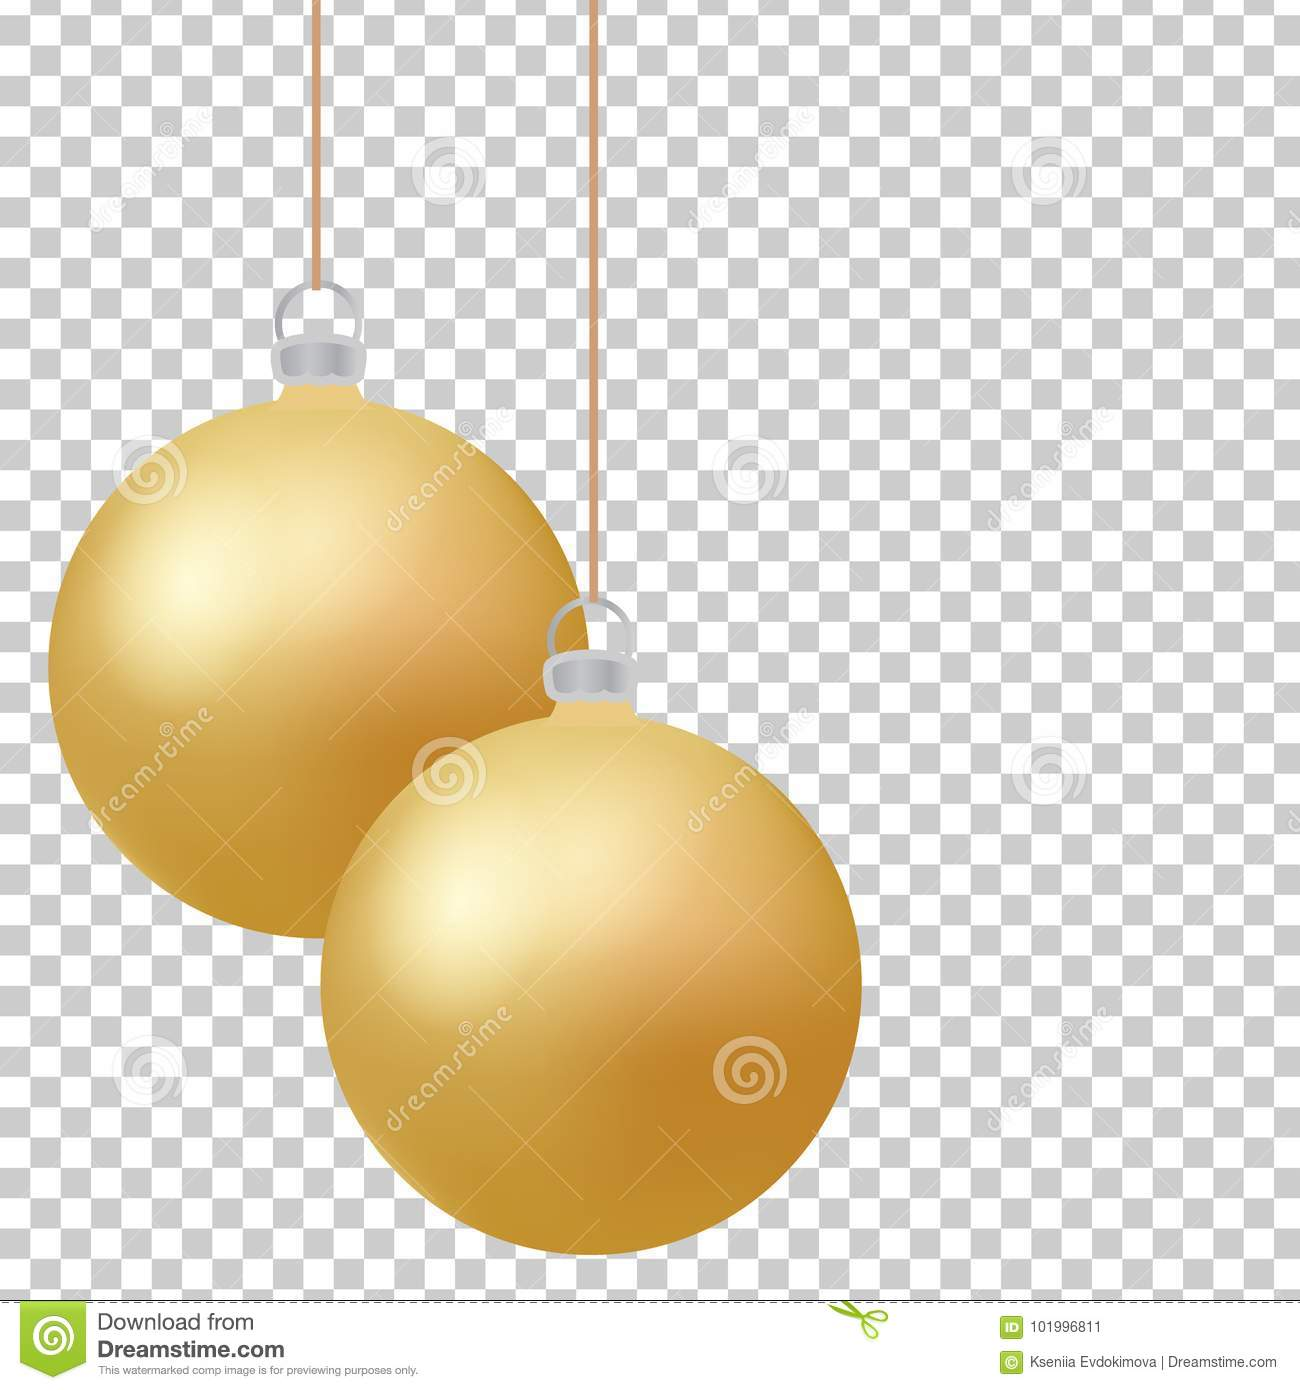 Classic christmas golden balls with glance. Isolated new year baubles design elements. Vector illustration